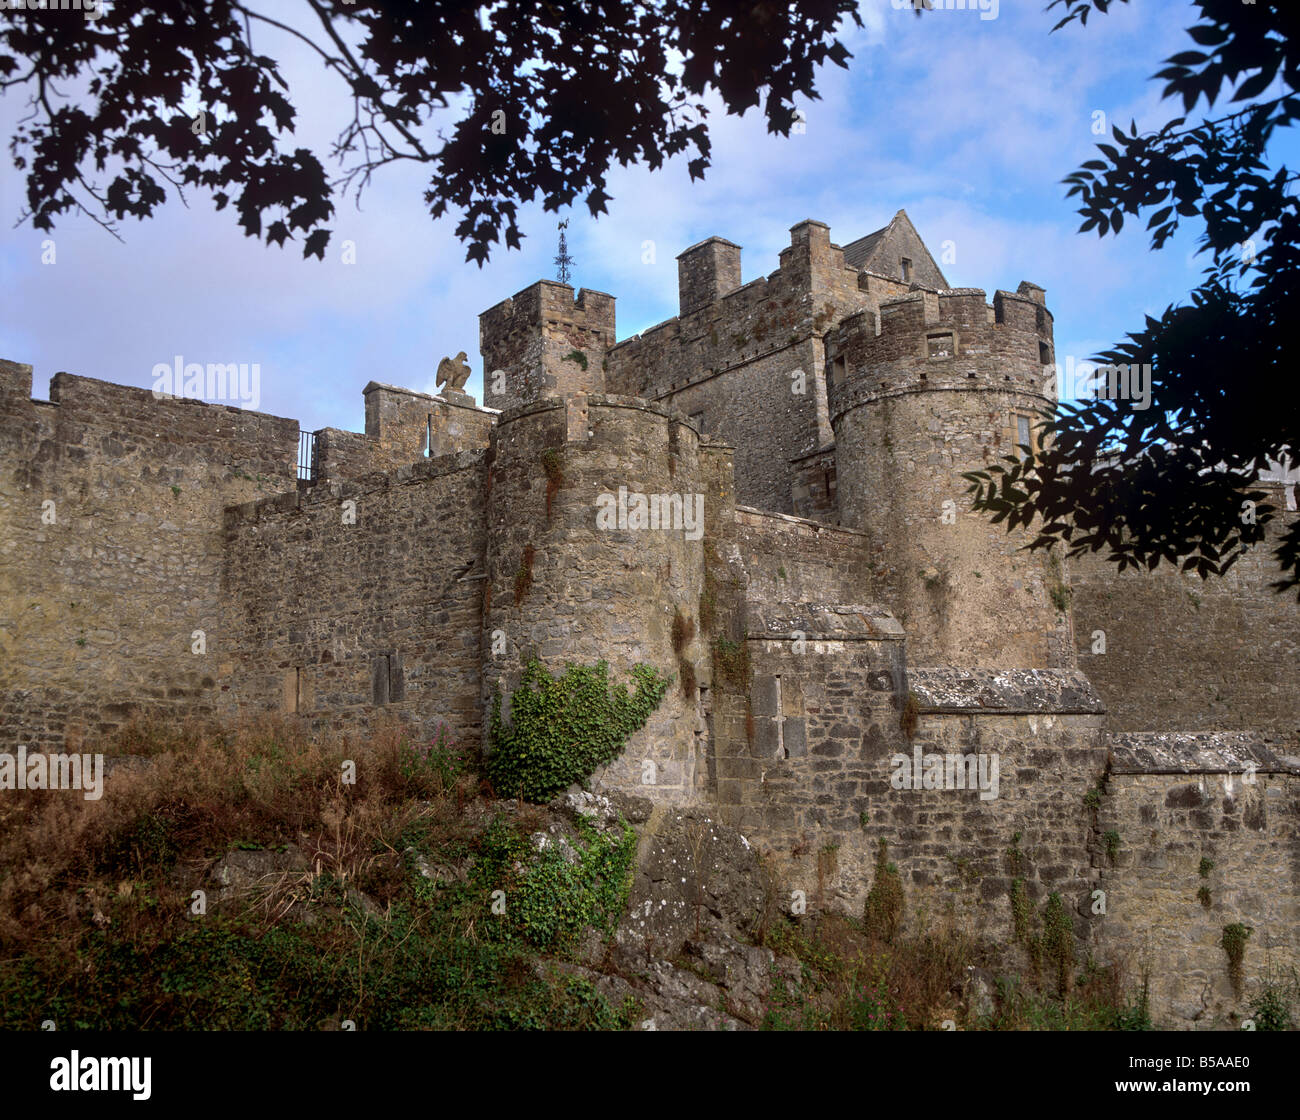 Cahir Castle, stronghold of the Butler family, Caher, County Tipperary, Munster, Republic of Ireland - Stock Image